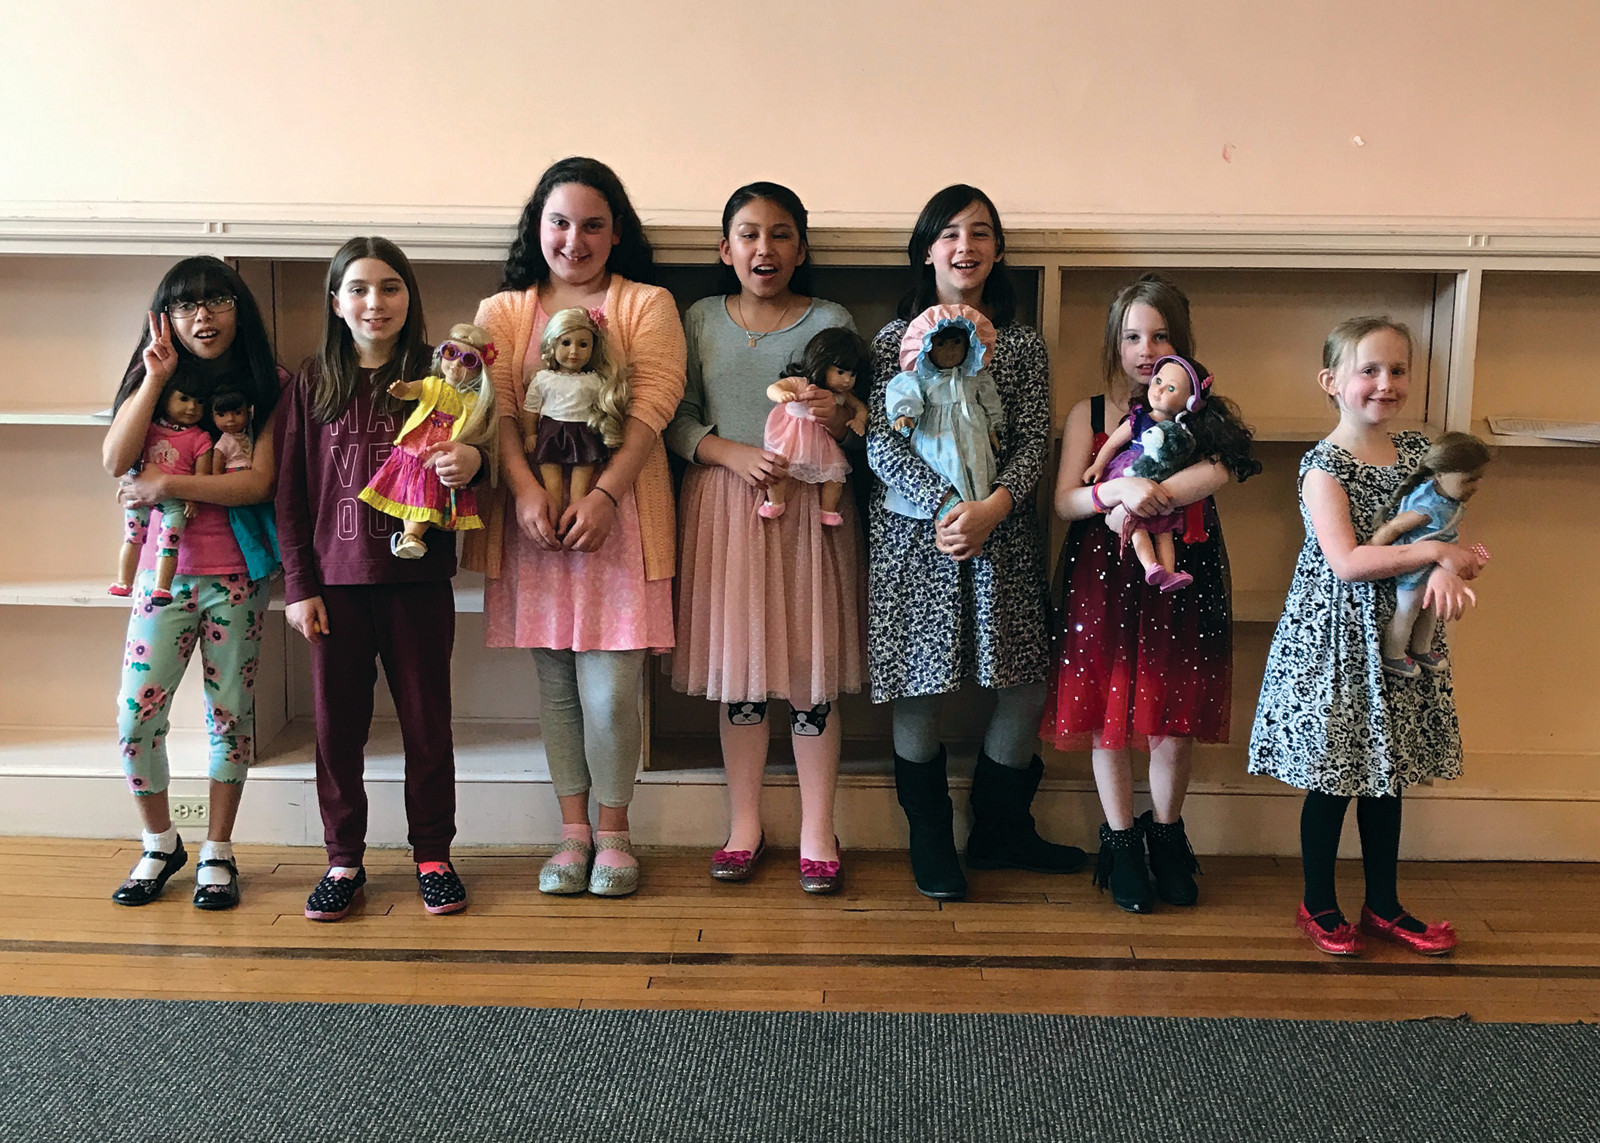 HELLO, AMERICAN GIRL DOLLY: Left to right, Celine, Anya, Jordan, Liliana, Isabella, Samantha and Nora, pose happily with with their special friends at the American Girl Doll tea party on April 15 at William Hall library.